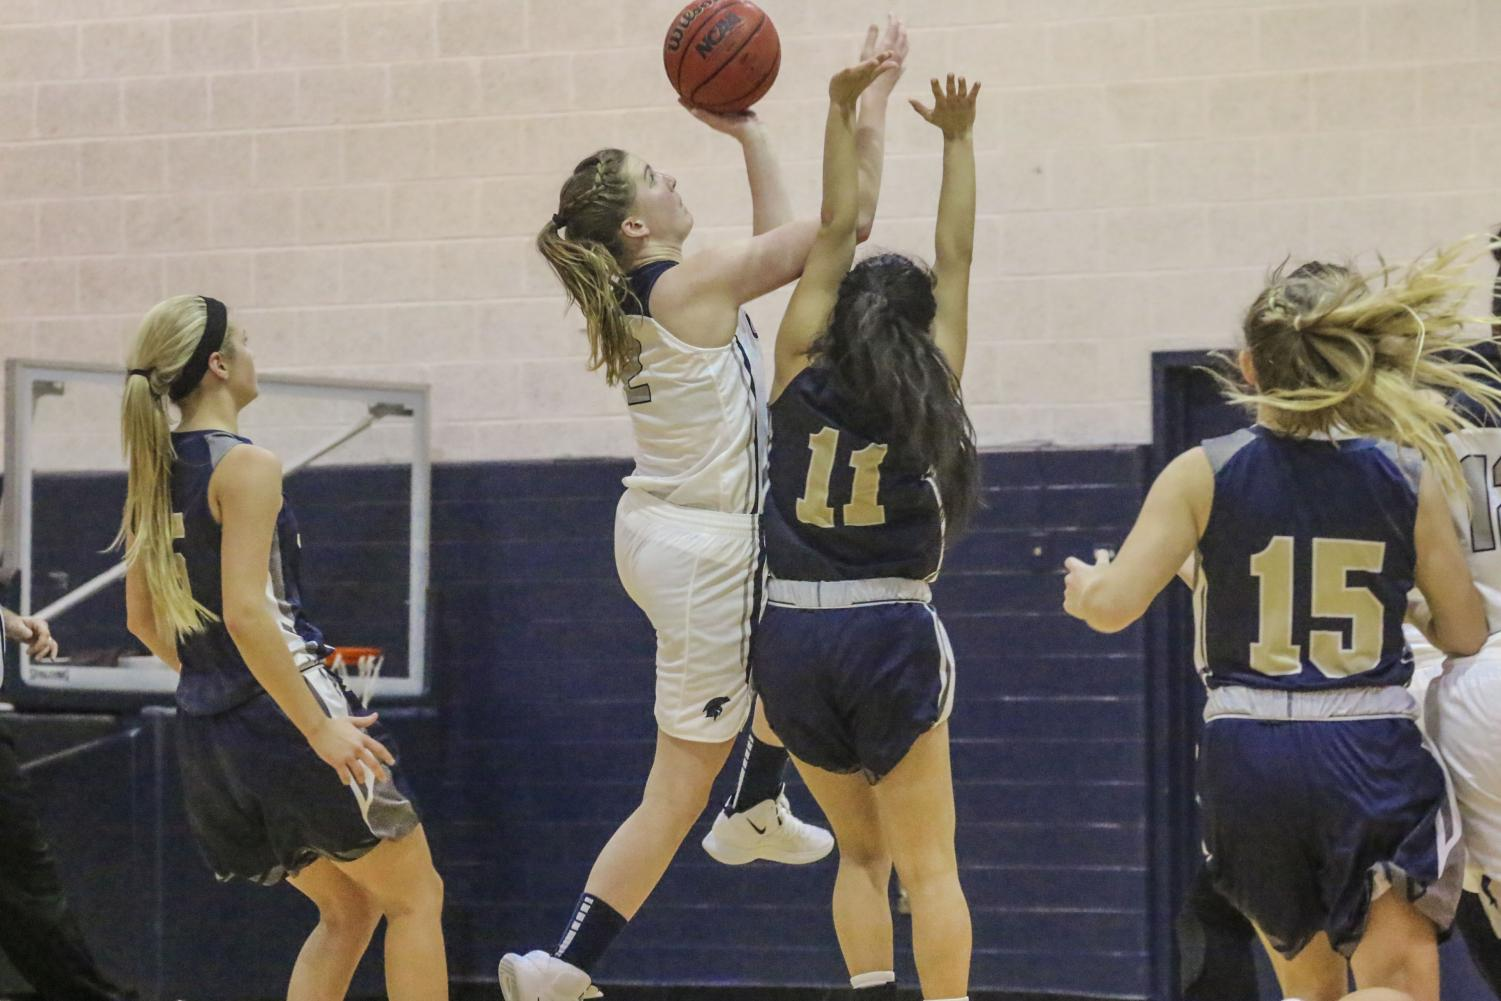 Graduate student forward Kara Hageman (2) is the second leading scorer for the Spartans this season, averaging 17 points on 50 percent shooting. After returning from an injury that derailed her season last year, she has come back to pace the Spartans to a 4-1 record.